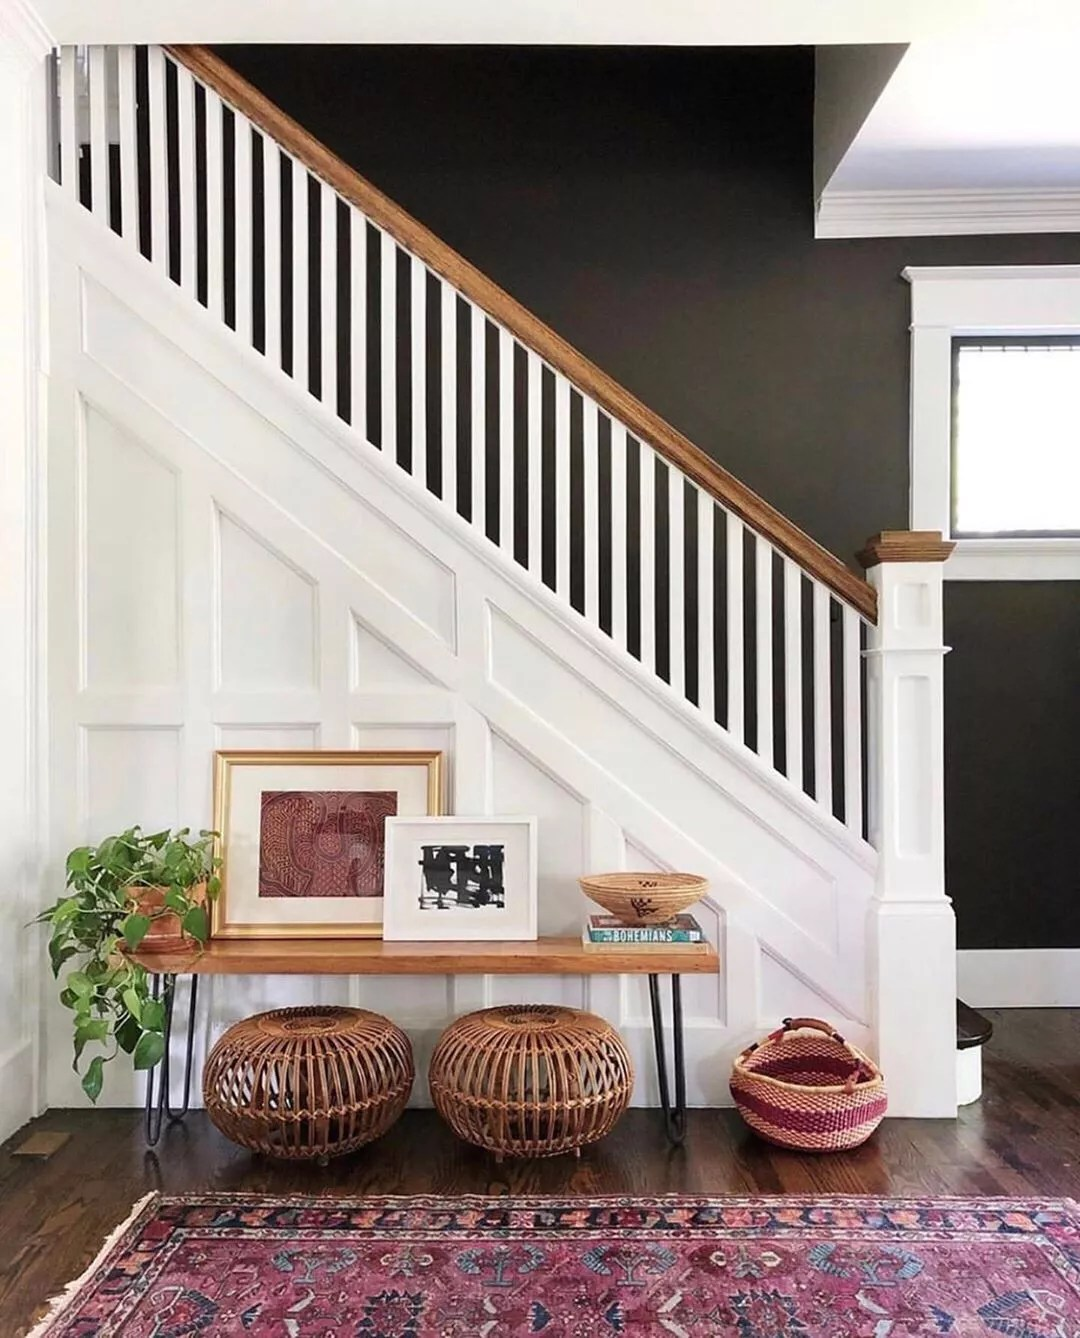 Staged entryway near stairs. Photo by Instagram user @staged4more